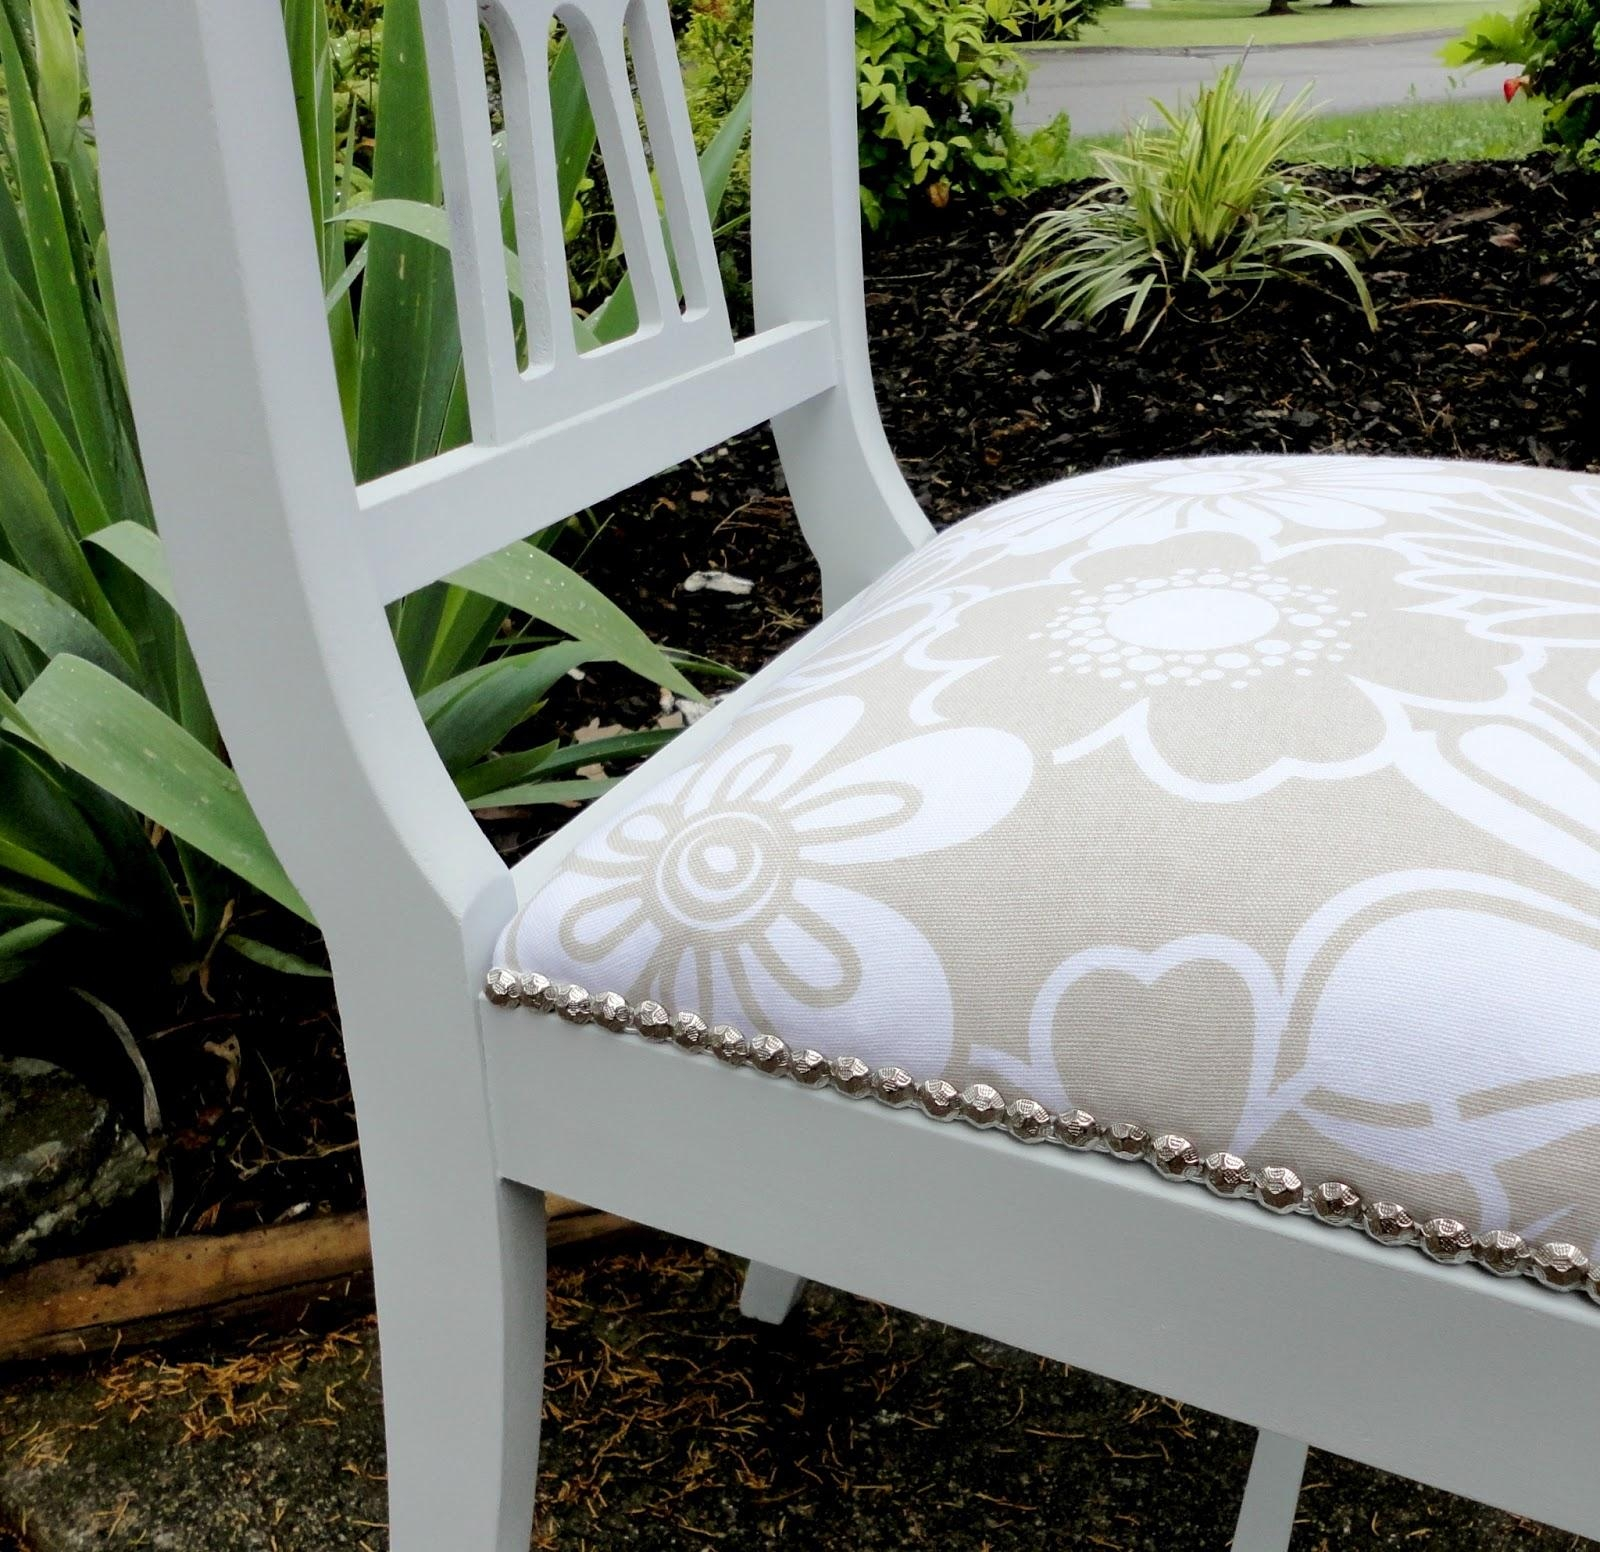 Livelovediy: How To Reupholster A Chair Inside Reupholster Sofas Cushions (View 15 of 20)